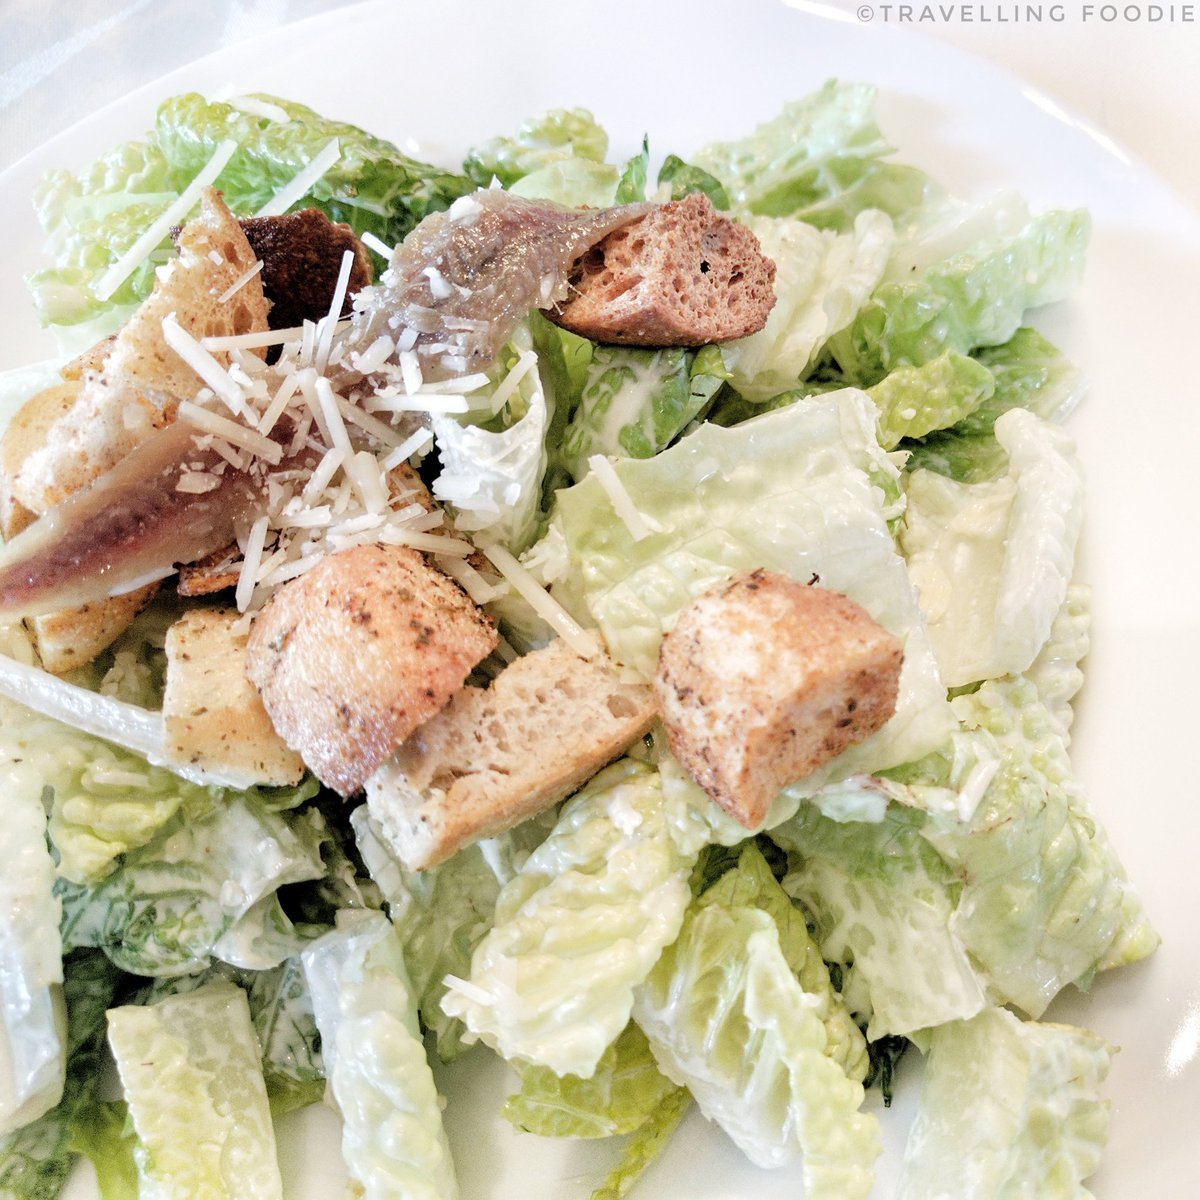 Travelling Foodie Eats Caesar Salad at Bellatrix Restaurant in Classic Club Golf